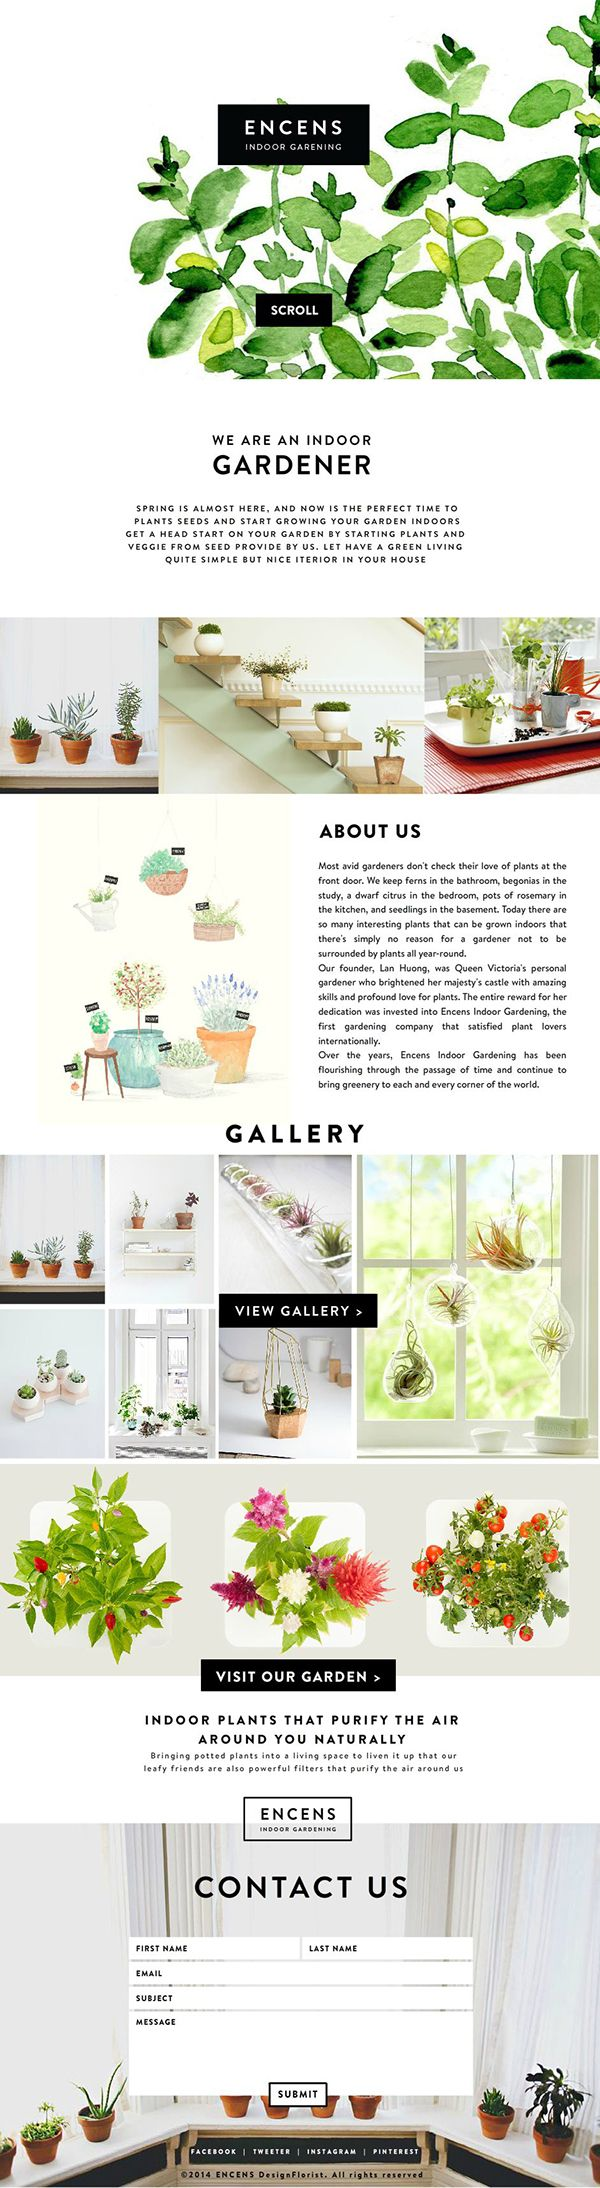 ENCENS- Not only am I drawn to this ad because I love plants, but it is so eye-catching! The beautiful images and adorable colors work so well together to create an attractive advertisement. This ad has lots of information but it is displayed in a way that doesn't cause clutter or overwhelm the audience so much that they skip right past it and move on without reading it. The links to the website continually draw the audience to their store, without confusing the audience. Such a nice ad.